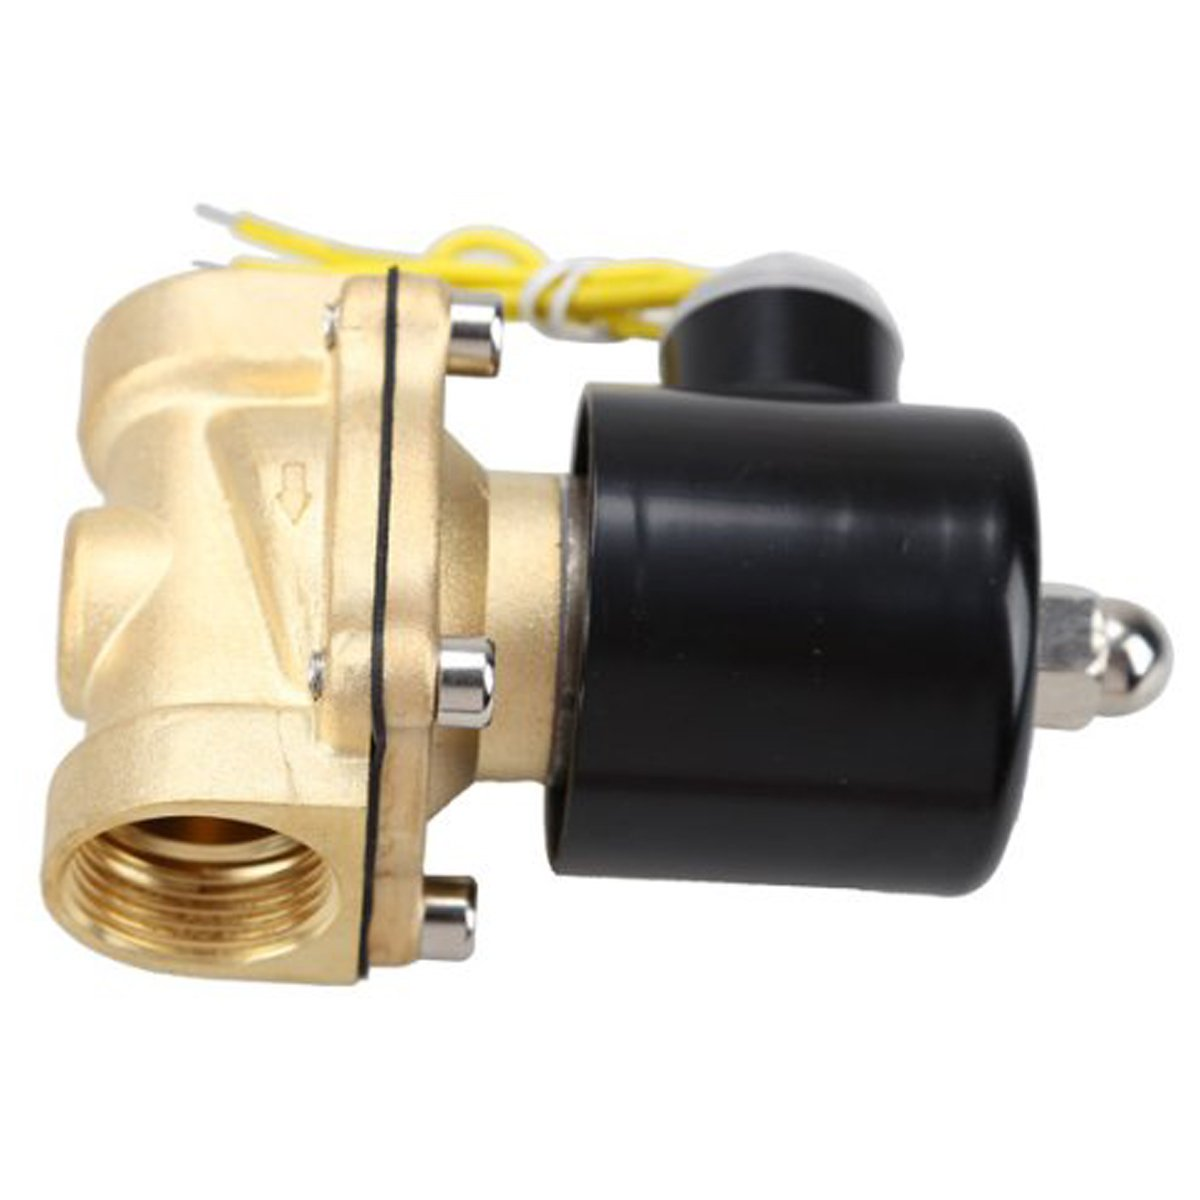 HSH-Flo Brass 3/4' DN20 110V/115VAC NPT 2 Way Normally Closed Electrical Solenoid Valve